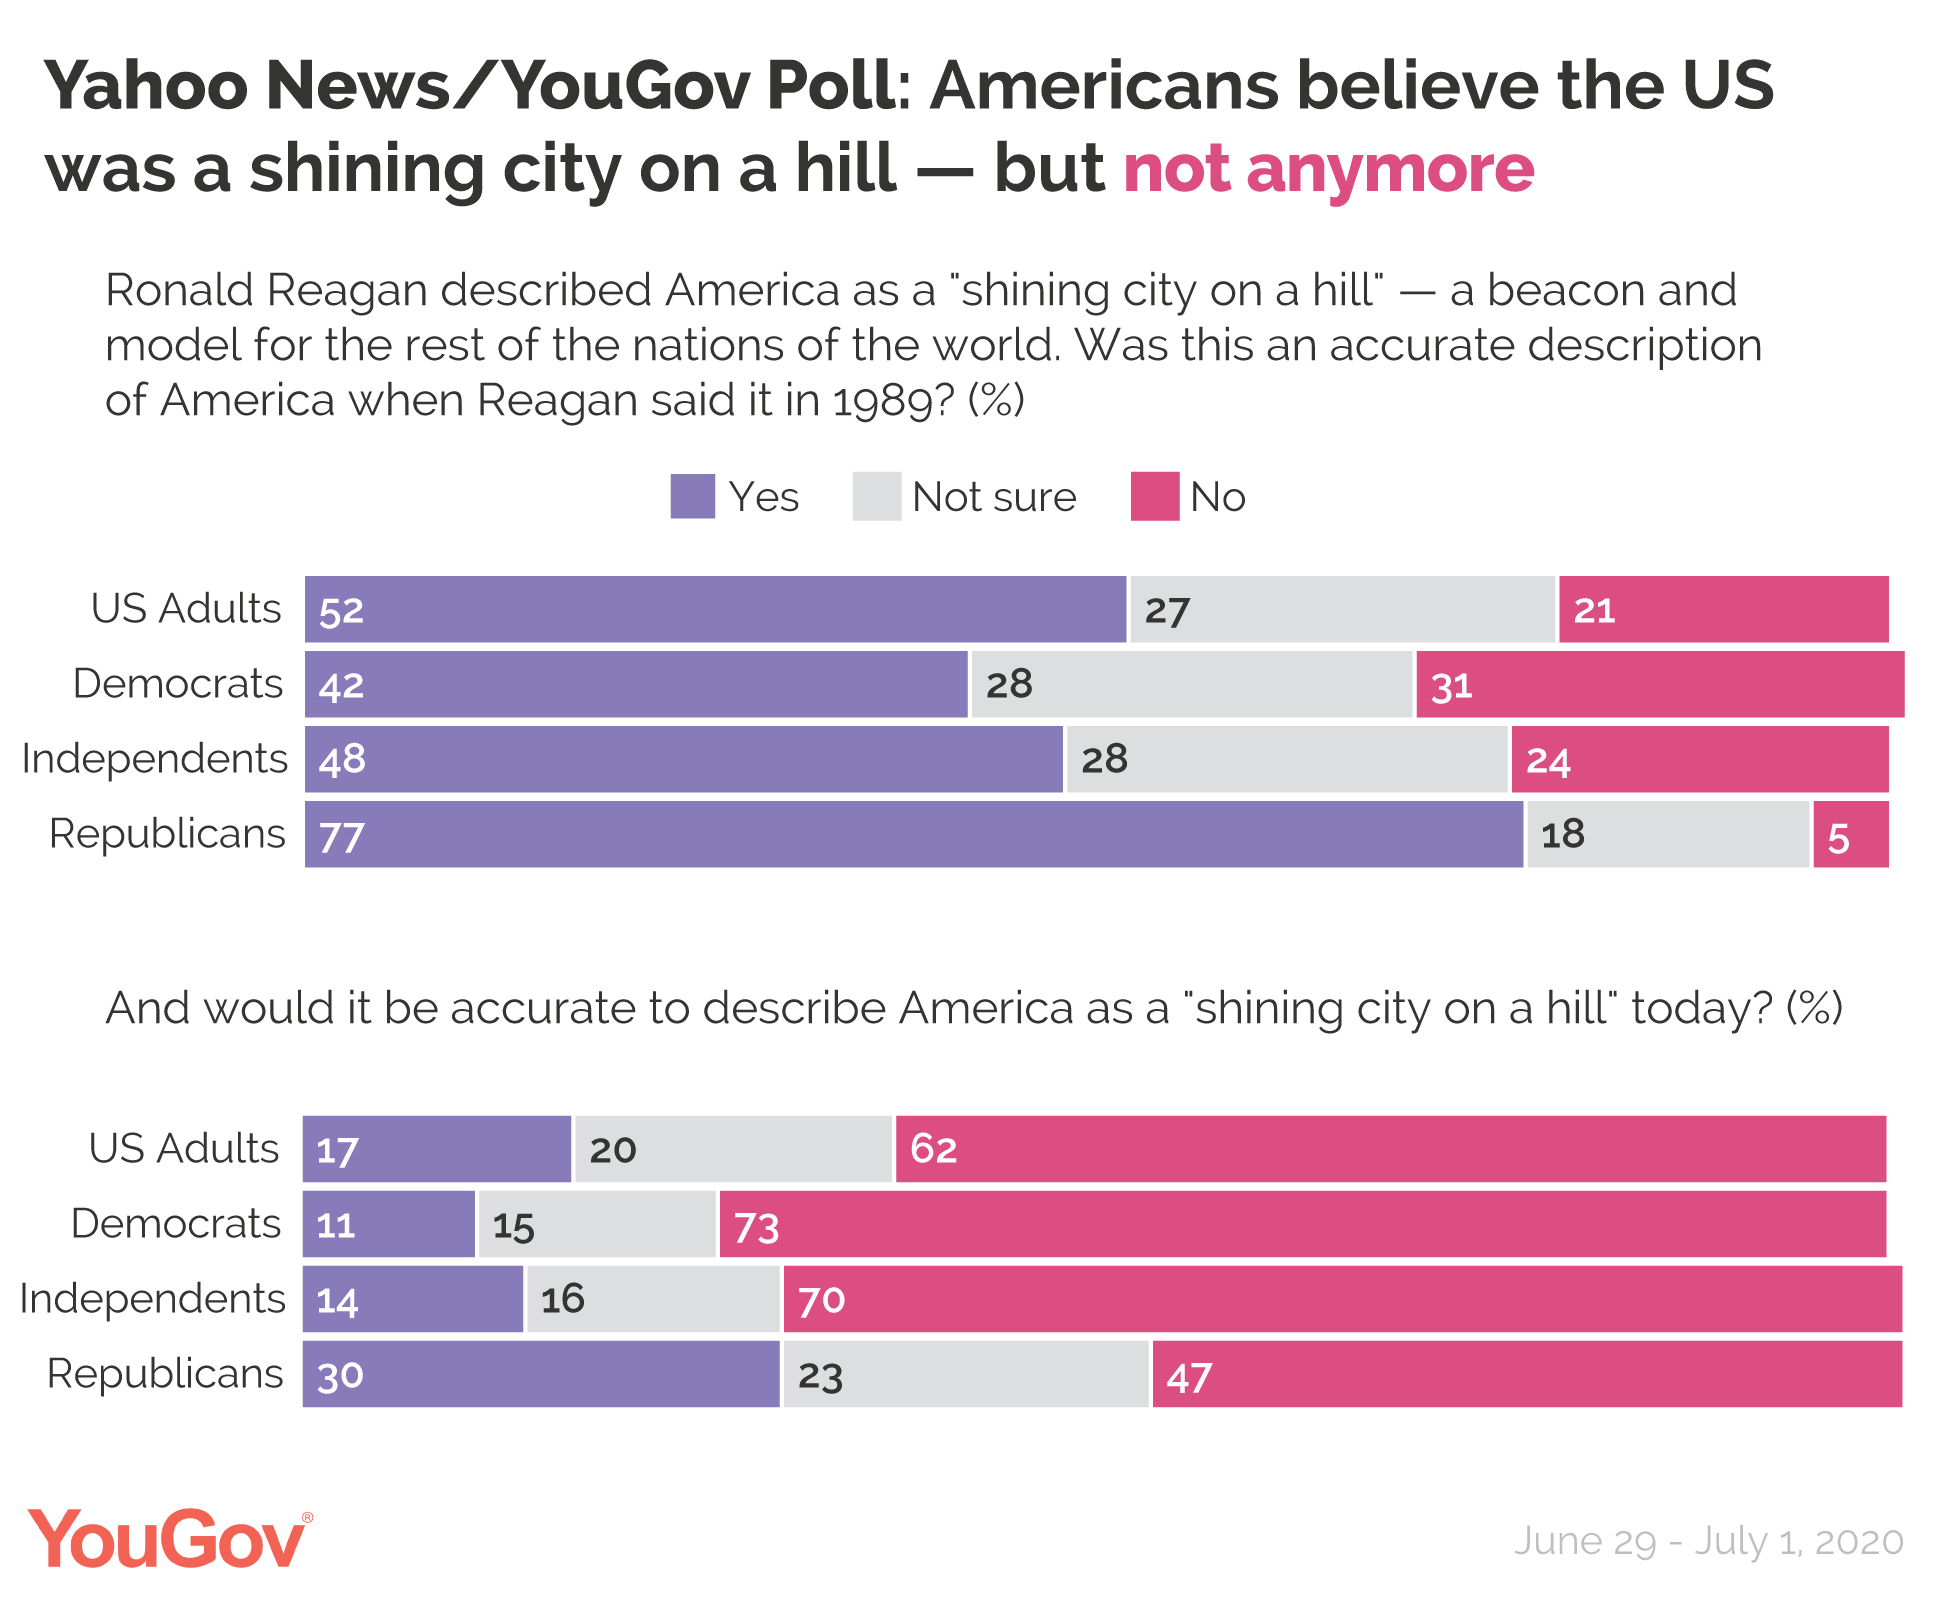 Yahoo News/YouGov: Americans believe the US was a shining city on a hill, but not anymore